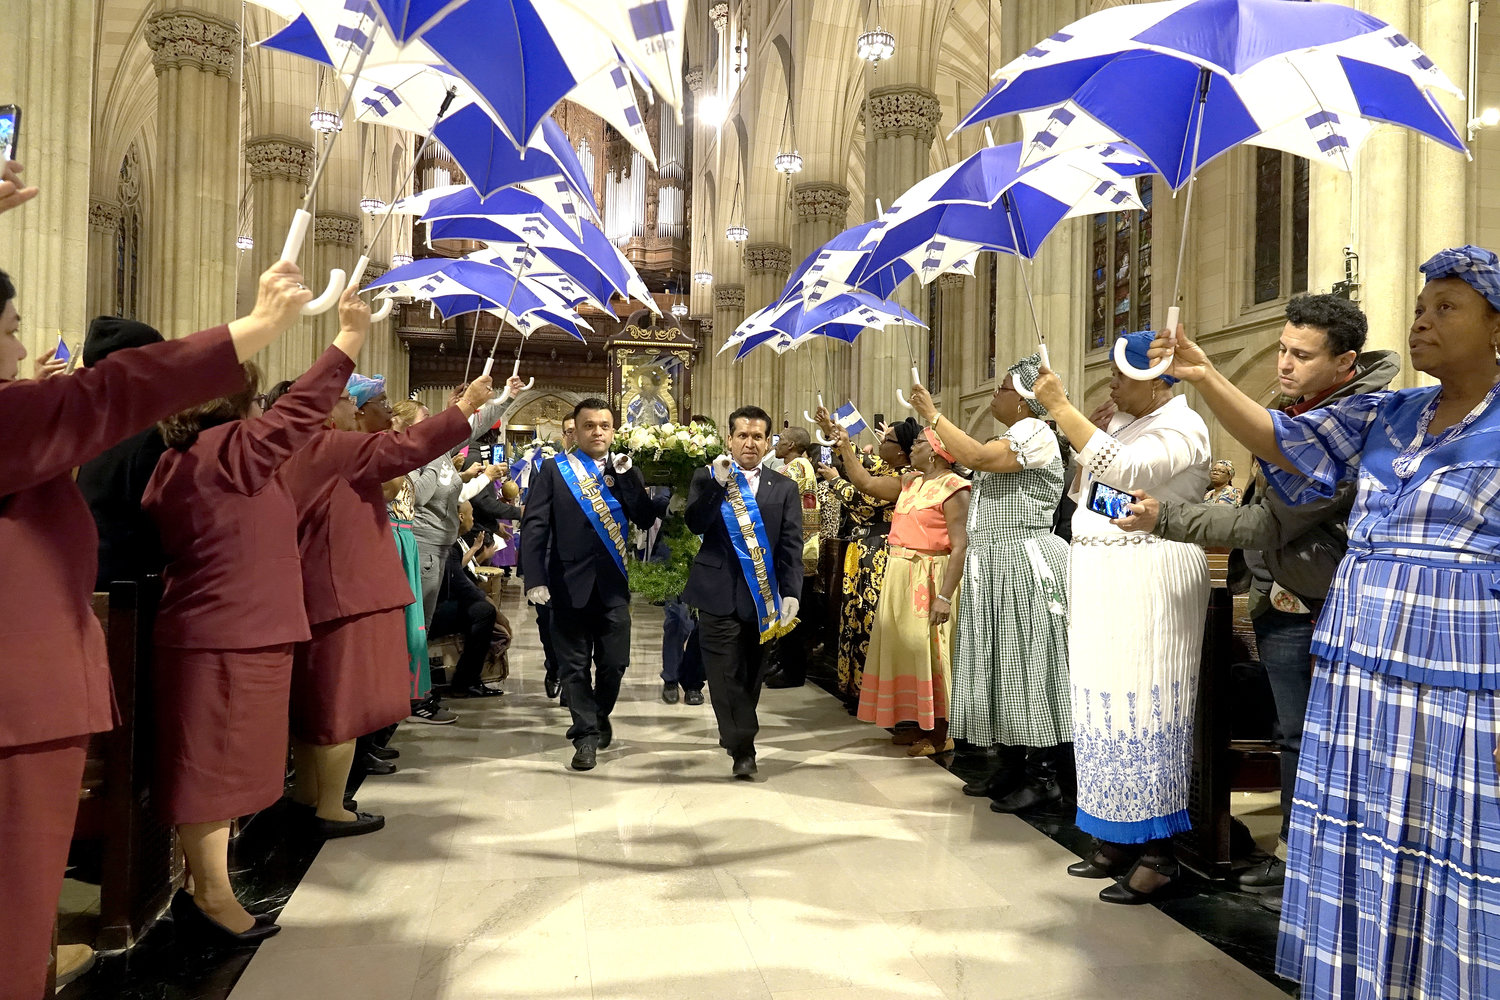 Participants in the entrance procession carry a figure of Our Lady of Suyapa up the center aisle of St. Patrick's Cathedral under a canopy of umbrellas Feb. 9 at the annual Mass in Spanish honoring the patroness of Honduras.